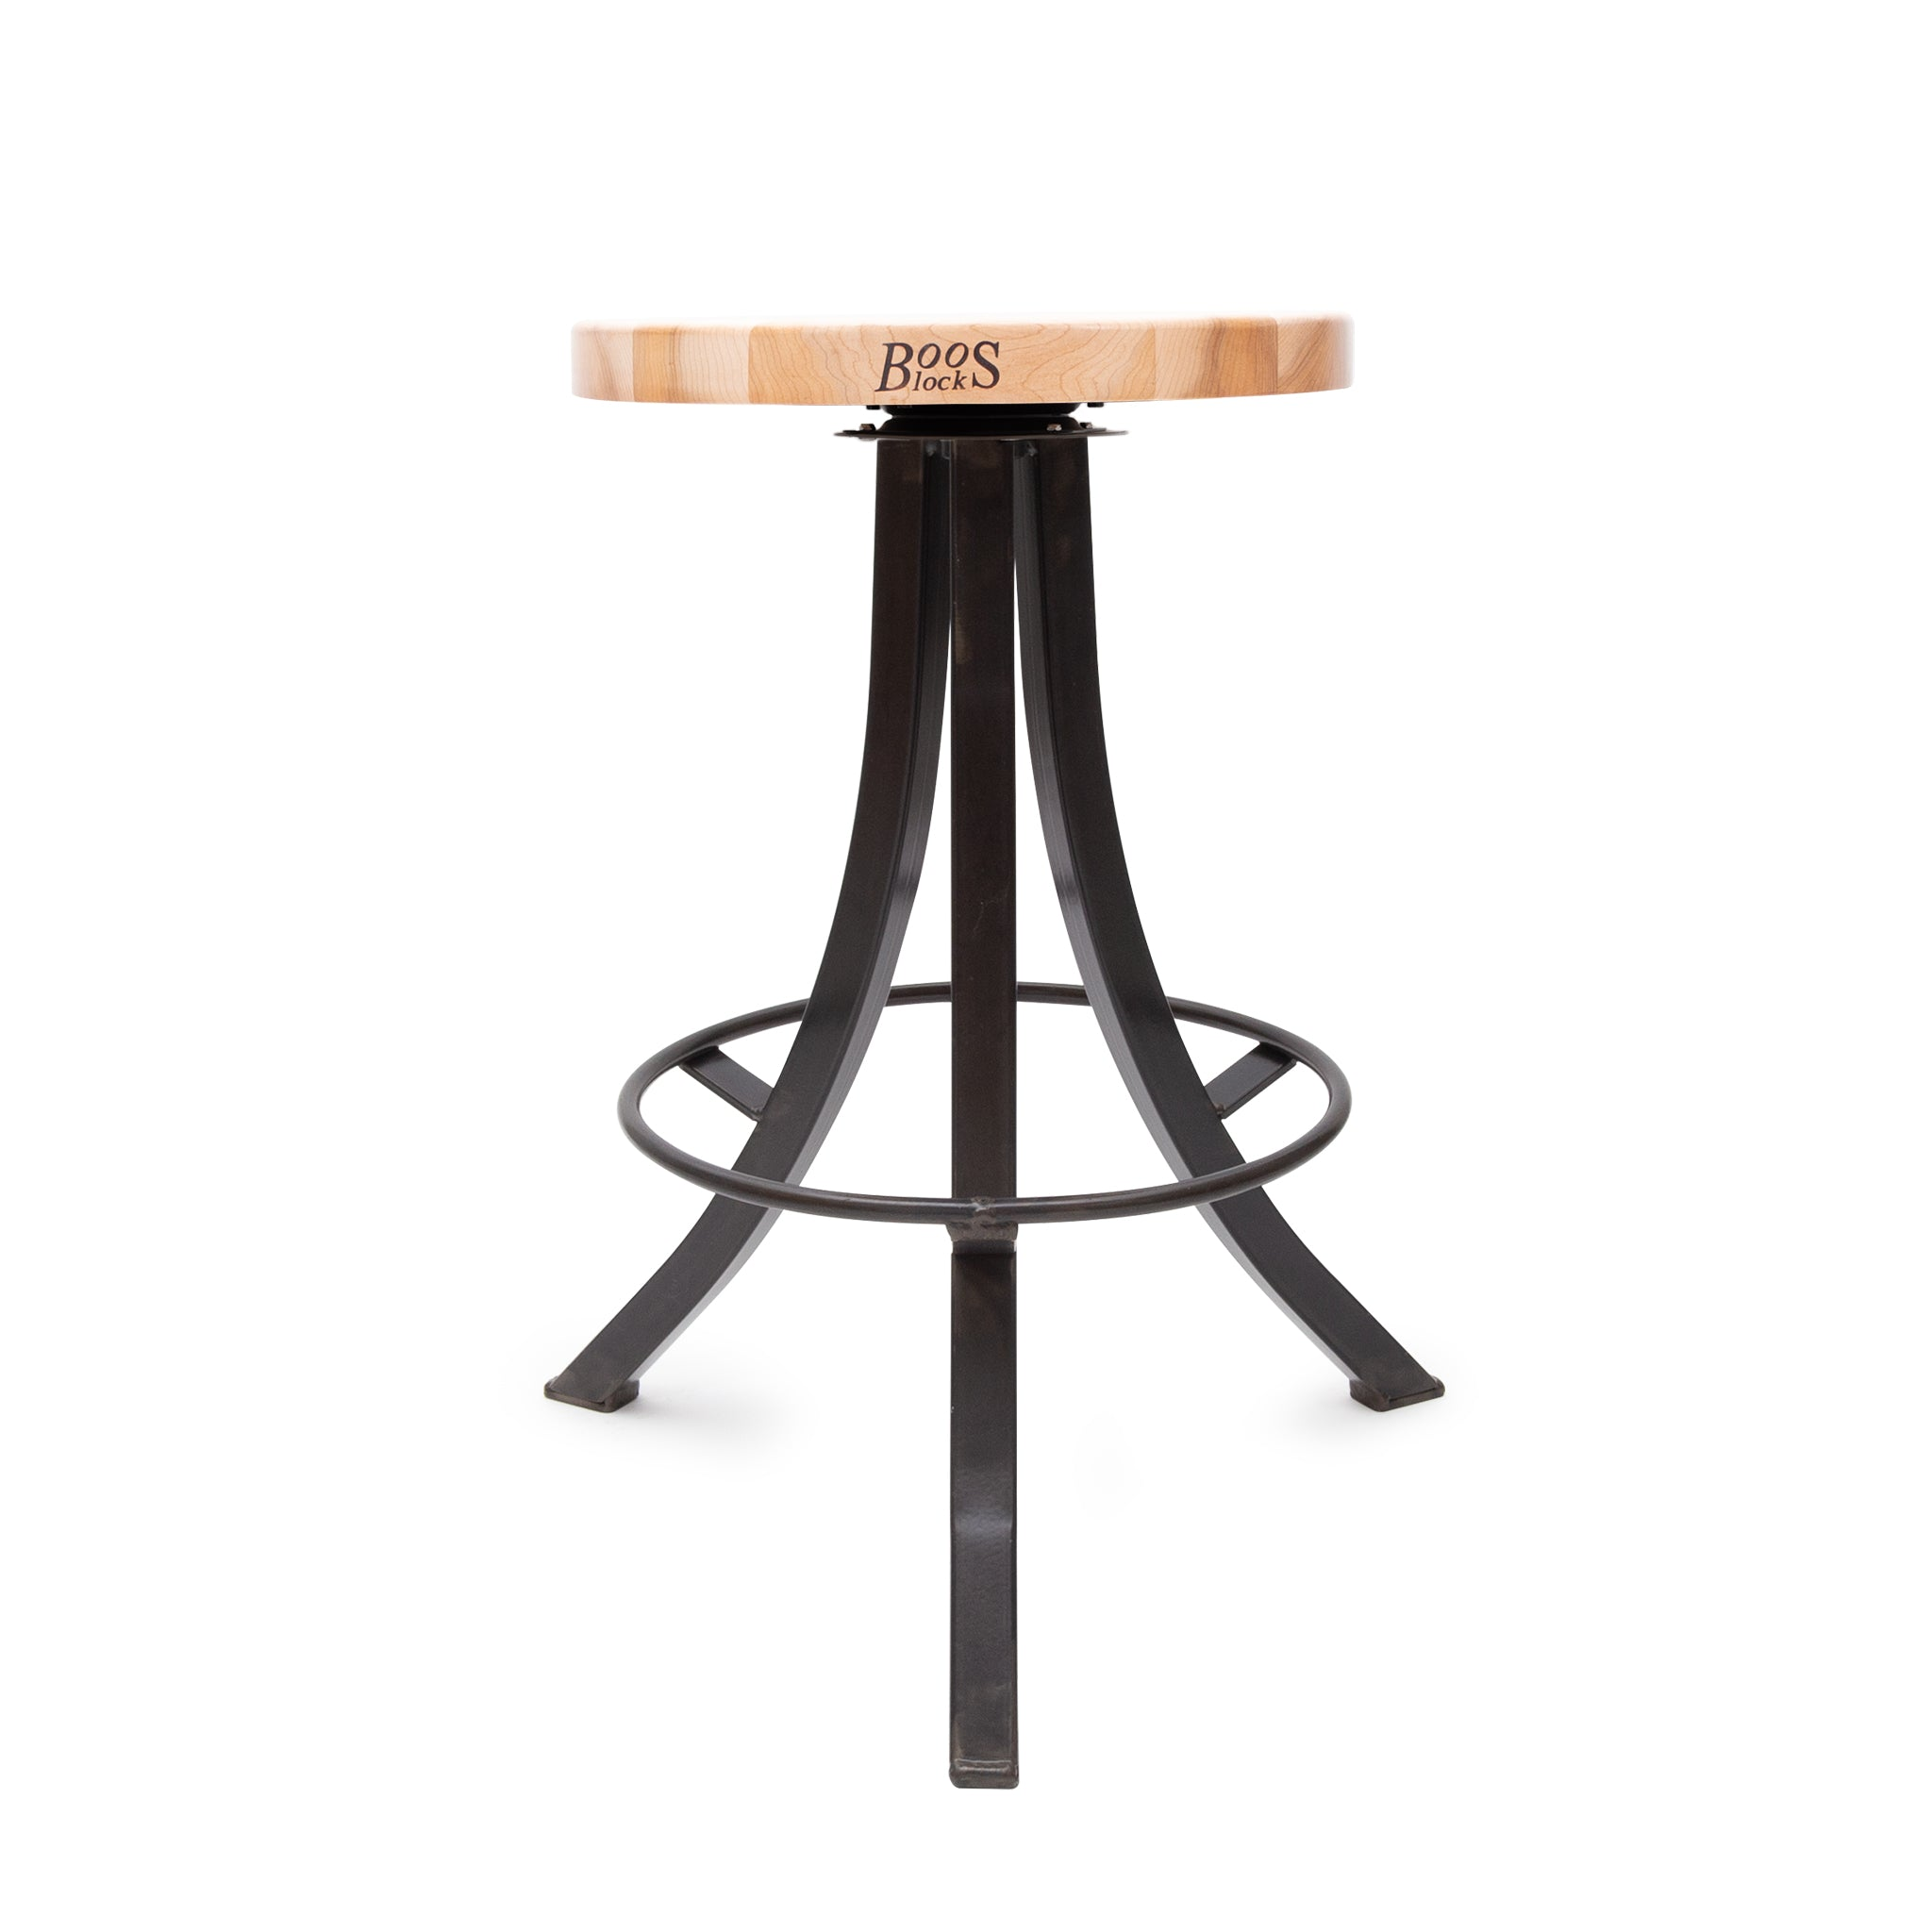 Foundry Collection Northern Hard Rock Maple Bistro Stool